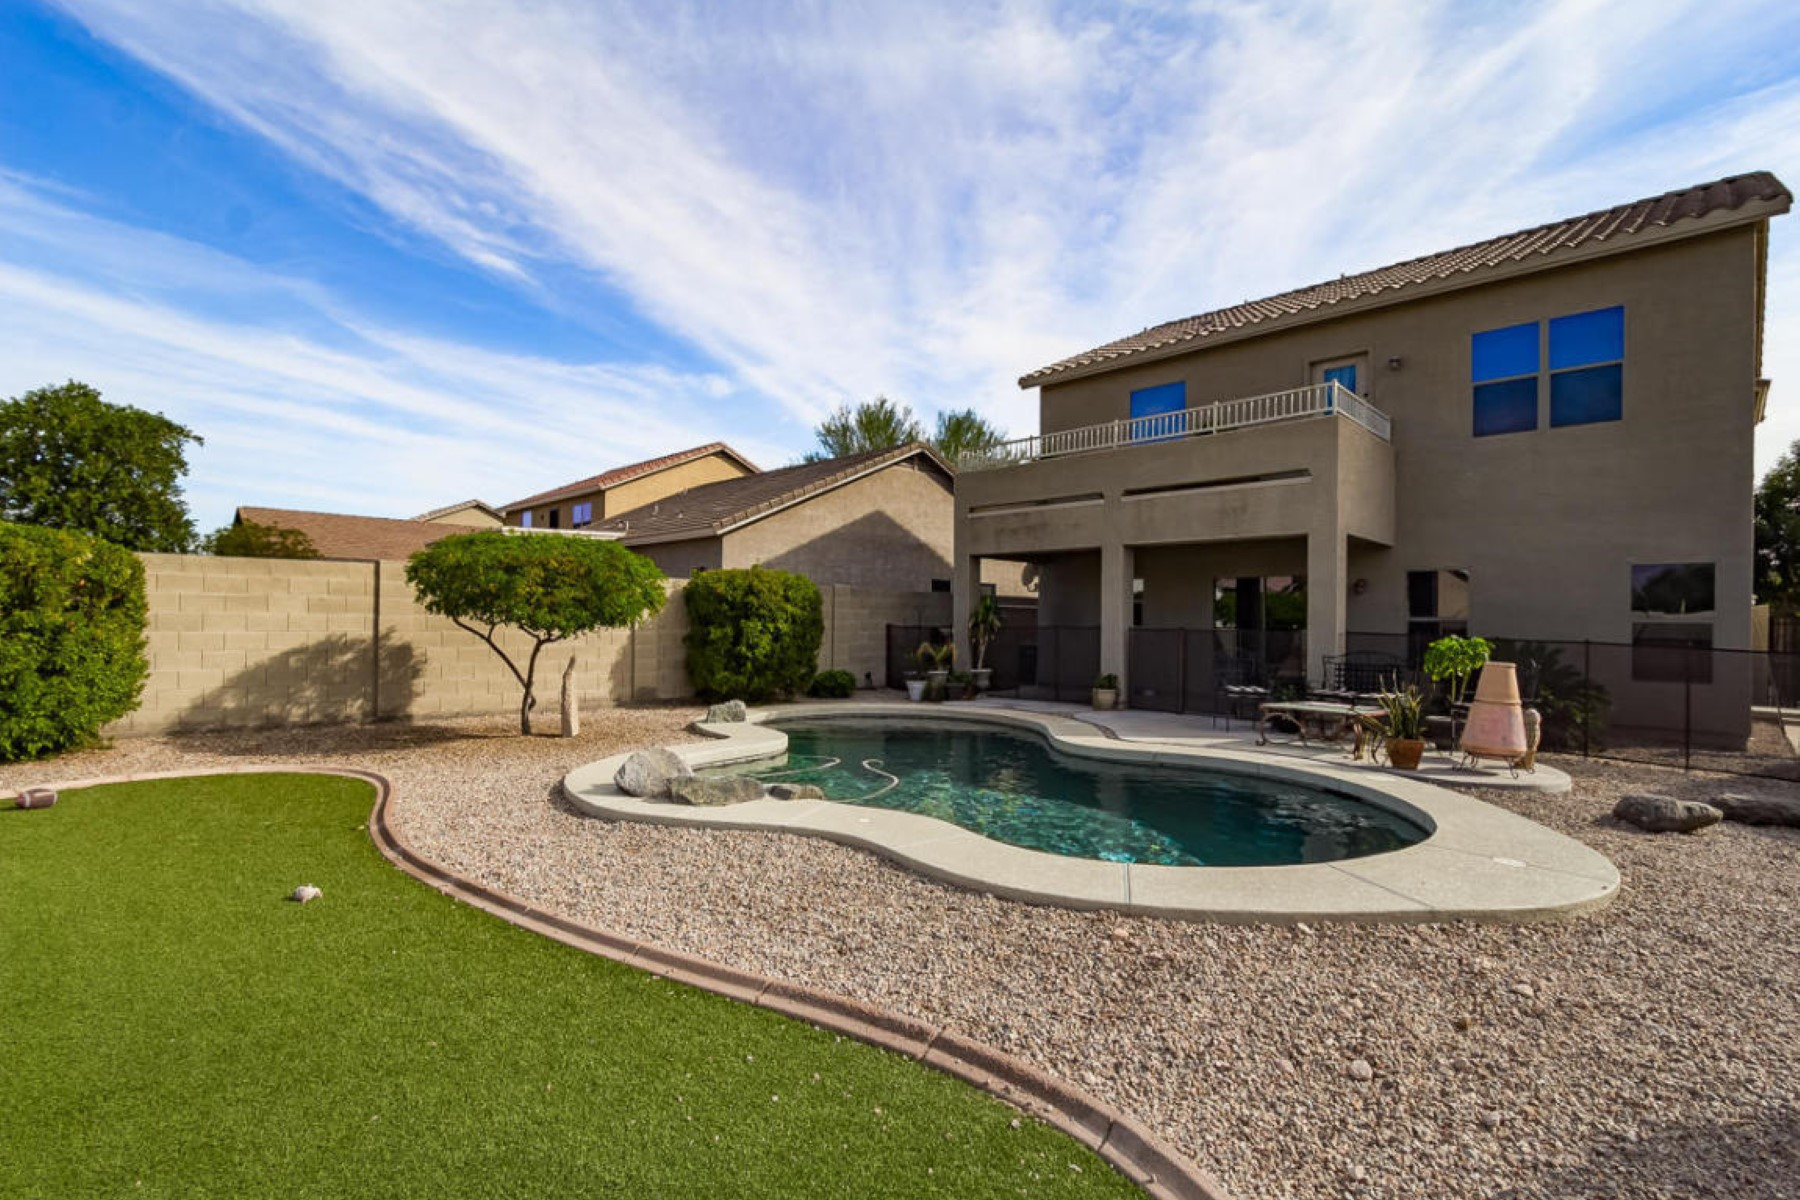 Single Family Home for Sale at Beautiful two story home nestled b Superstition Mountain 18150 E El Viejo Desierto Gold Canyon, Arizona 85118 United States